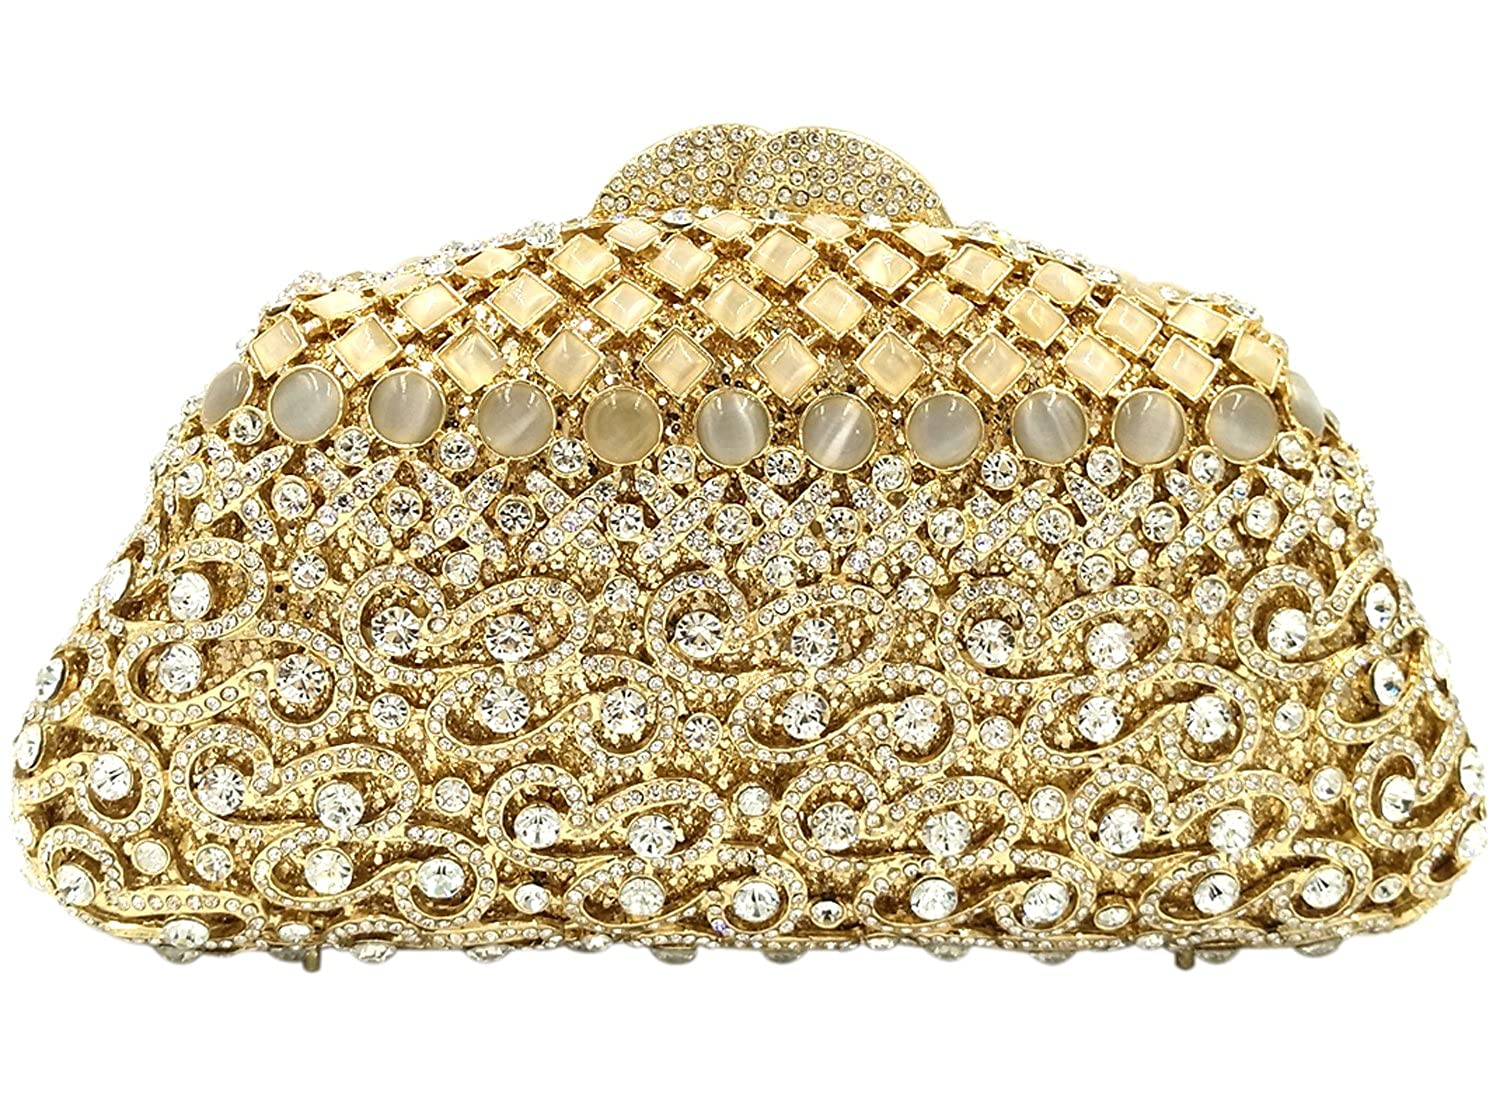 Amazon.com: Dress Handbags Evening Bags For Womens Clutches Purse Chain Rhinestones Wedding Gold: Clothing